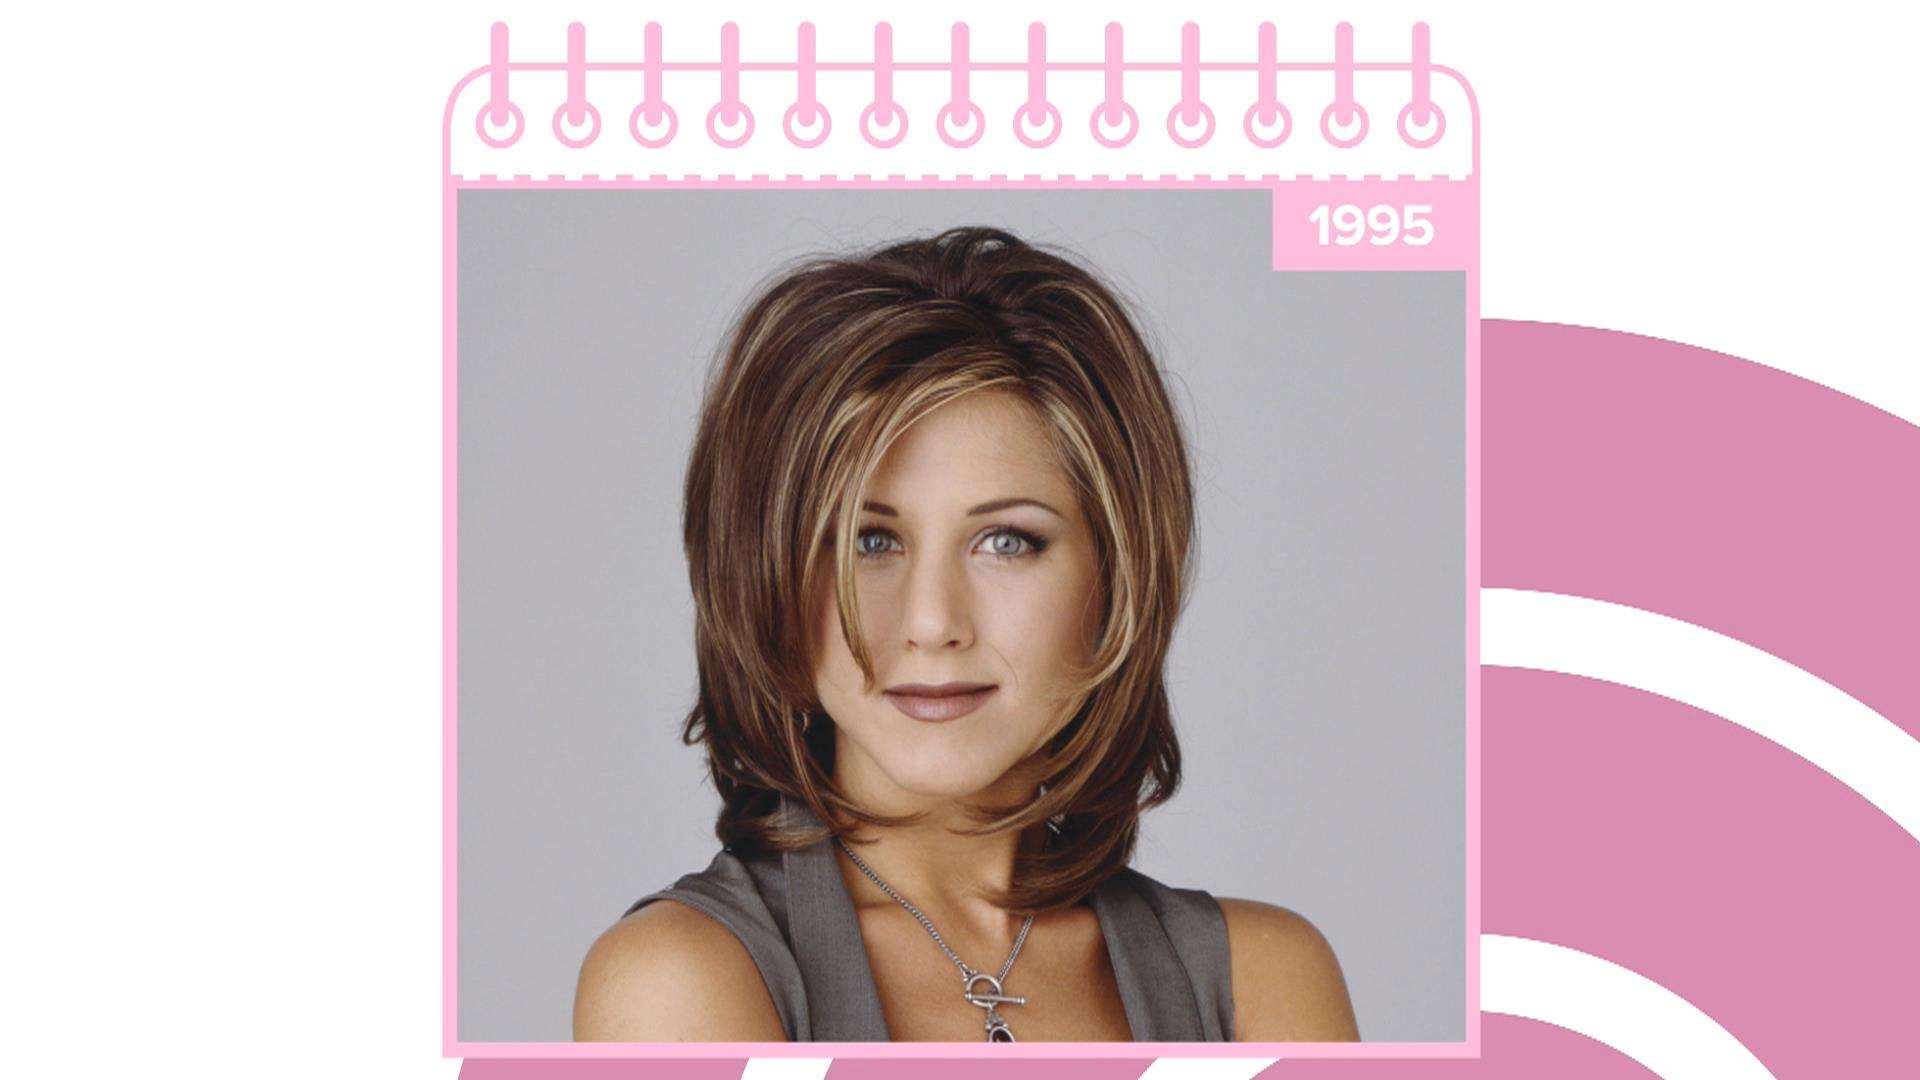 Jennifer Aniston Reveals The Haircut Shell Never Get Again